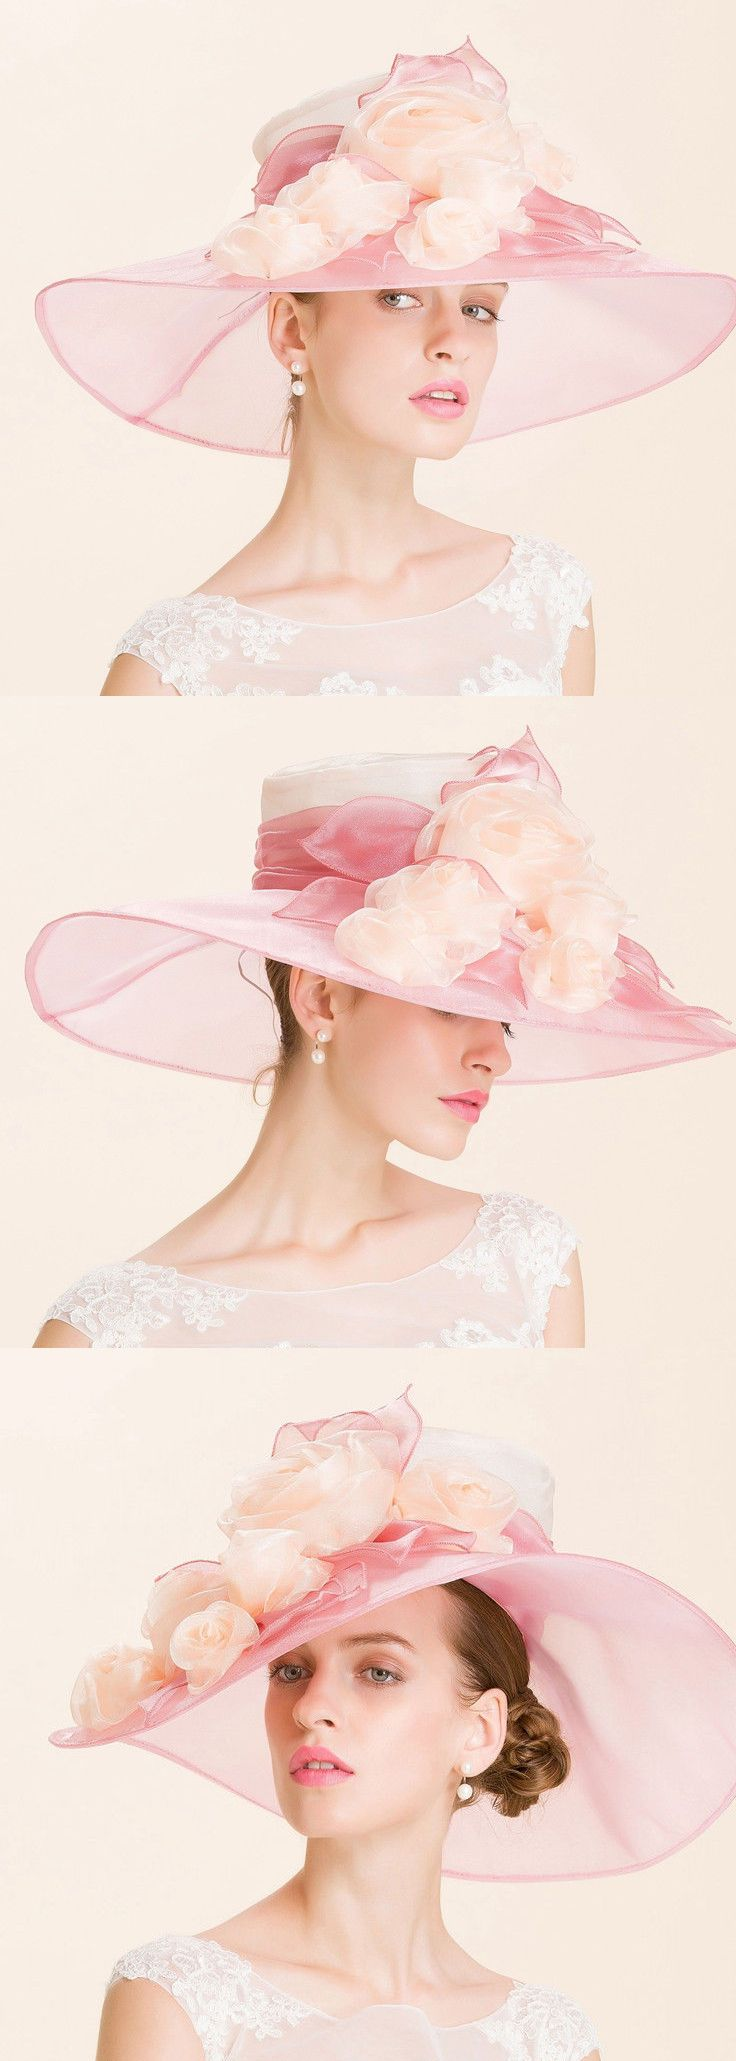 Fashion Womens Kentucky Derby Wedding Royal Ascot Church Wide Brim Dress Sun Hat. Ypu can't go wrong with a big floppy floral hat for your Kentucky Derby outfits, and Churchill downs encourage pastels, so this could be the perfect hat. Kentucky Derby Hat ideas. Outfit inspiration. Mother of the Bride, spring wedding. #kentuckyderby #derbyhats #bighats #hatsfothederby #kentuckyderbyoutfits #motherofthebride #affiliatelink #weddings #fashion